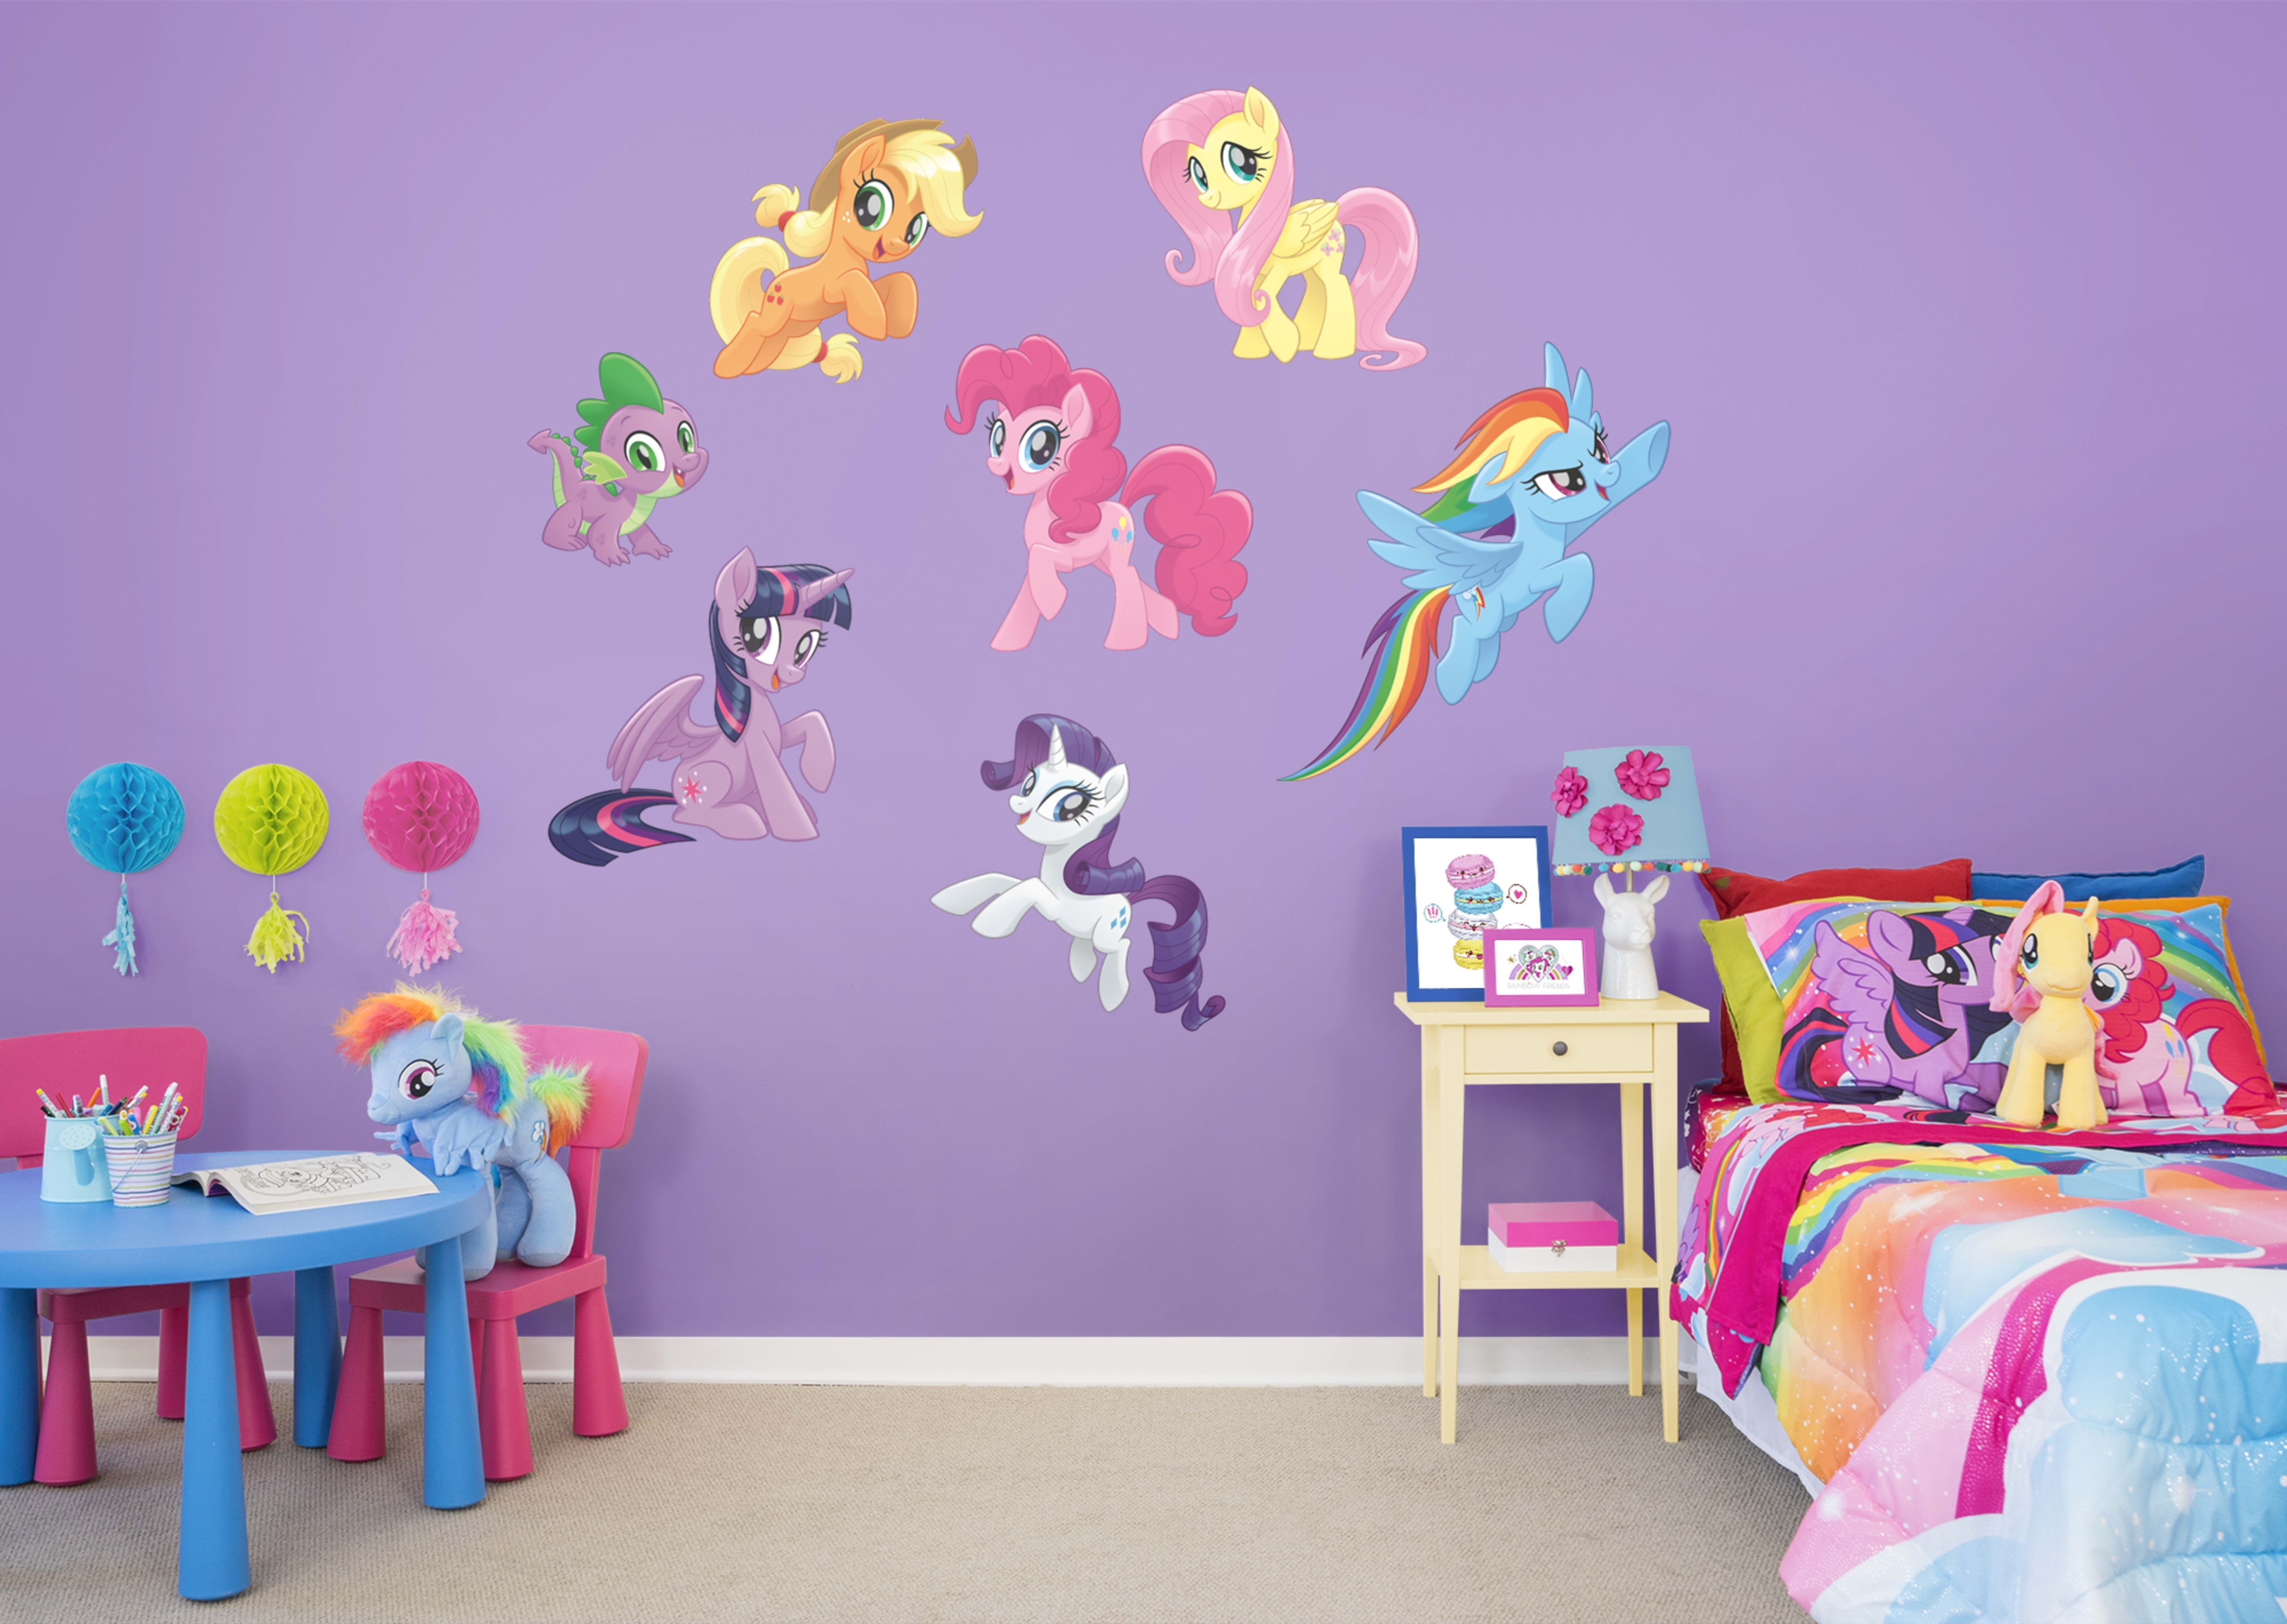 My Little Pony: The Movie – Collection Giant Officially Licensed Pertaining To My Little Pony Wall Art (View 2 of 20)